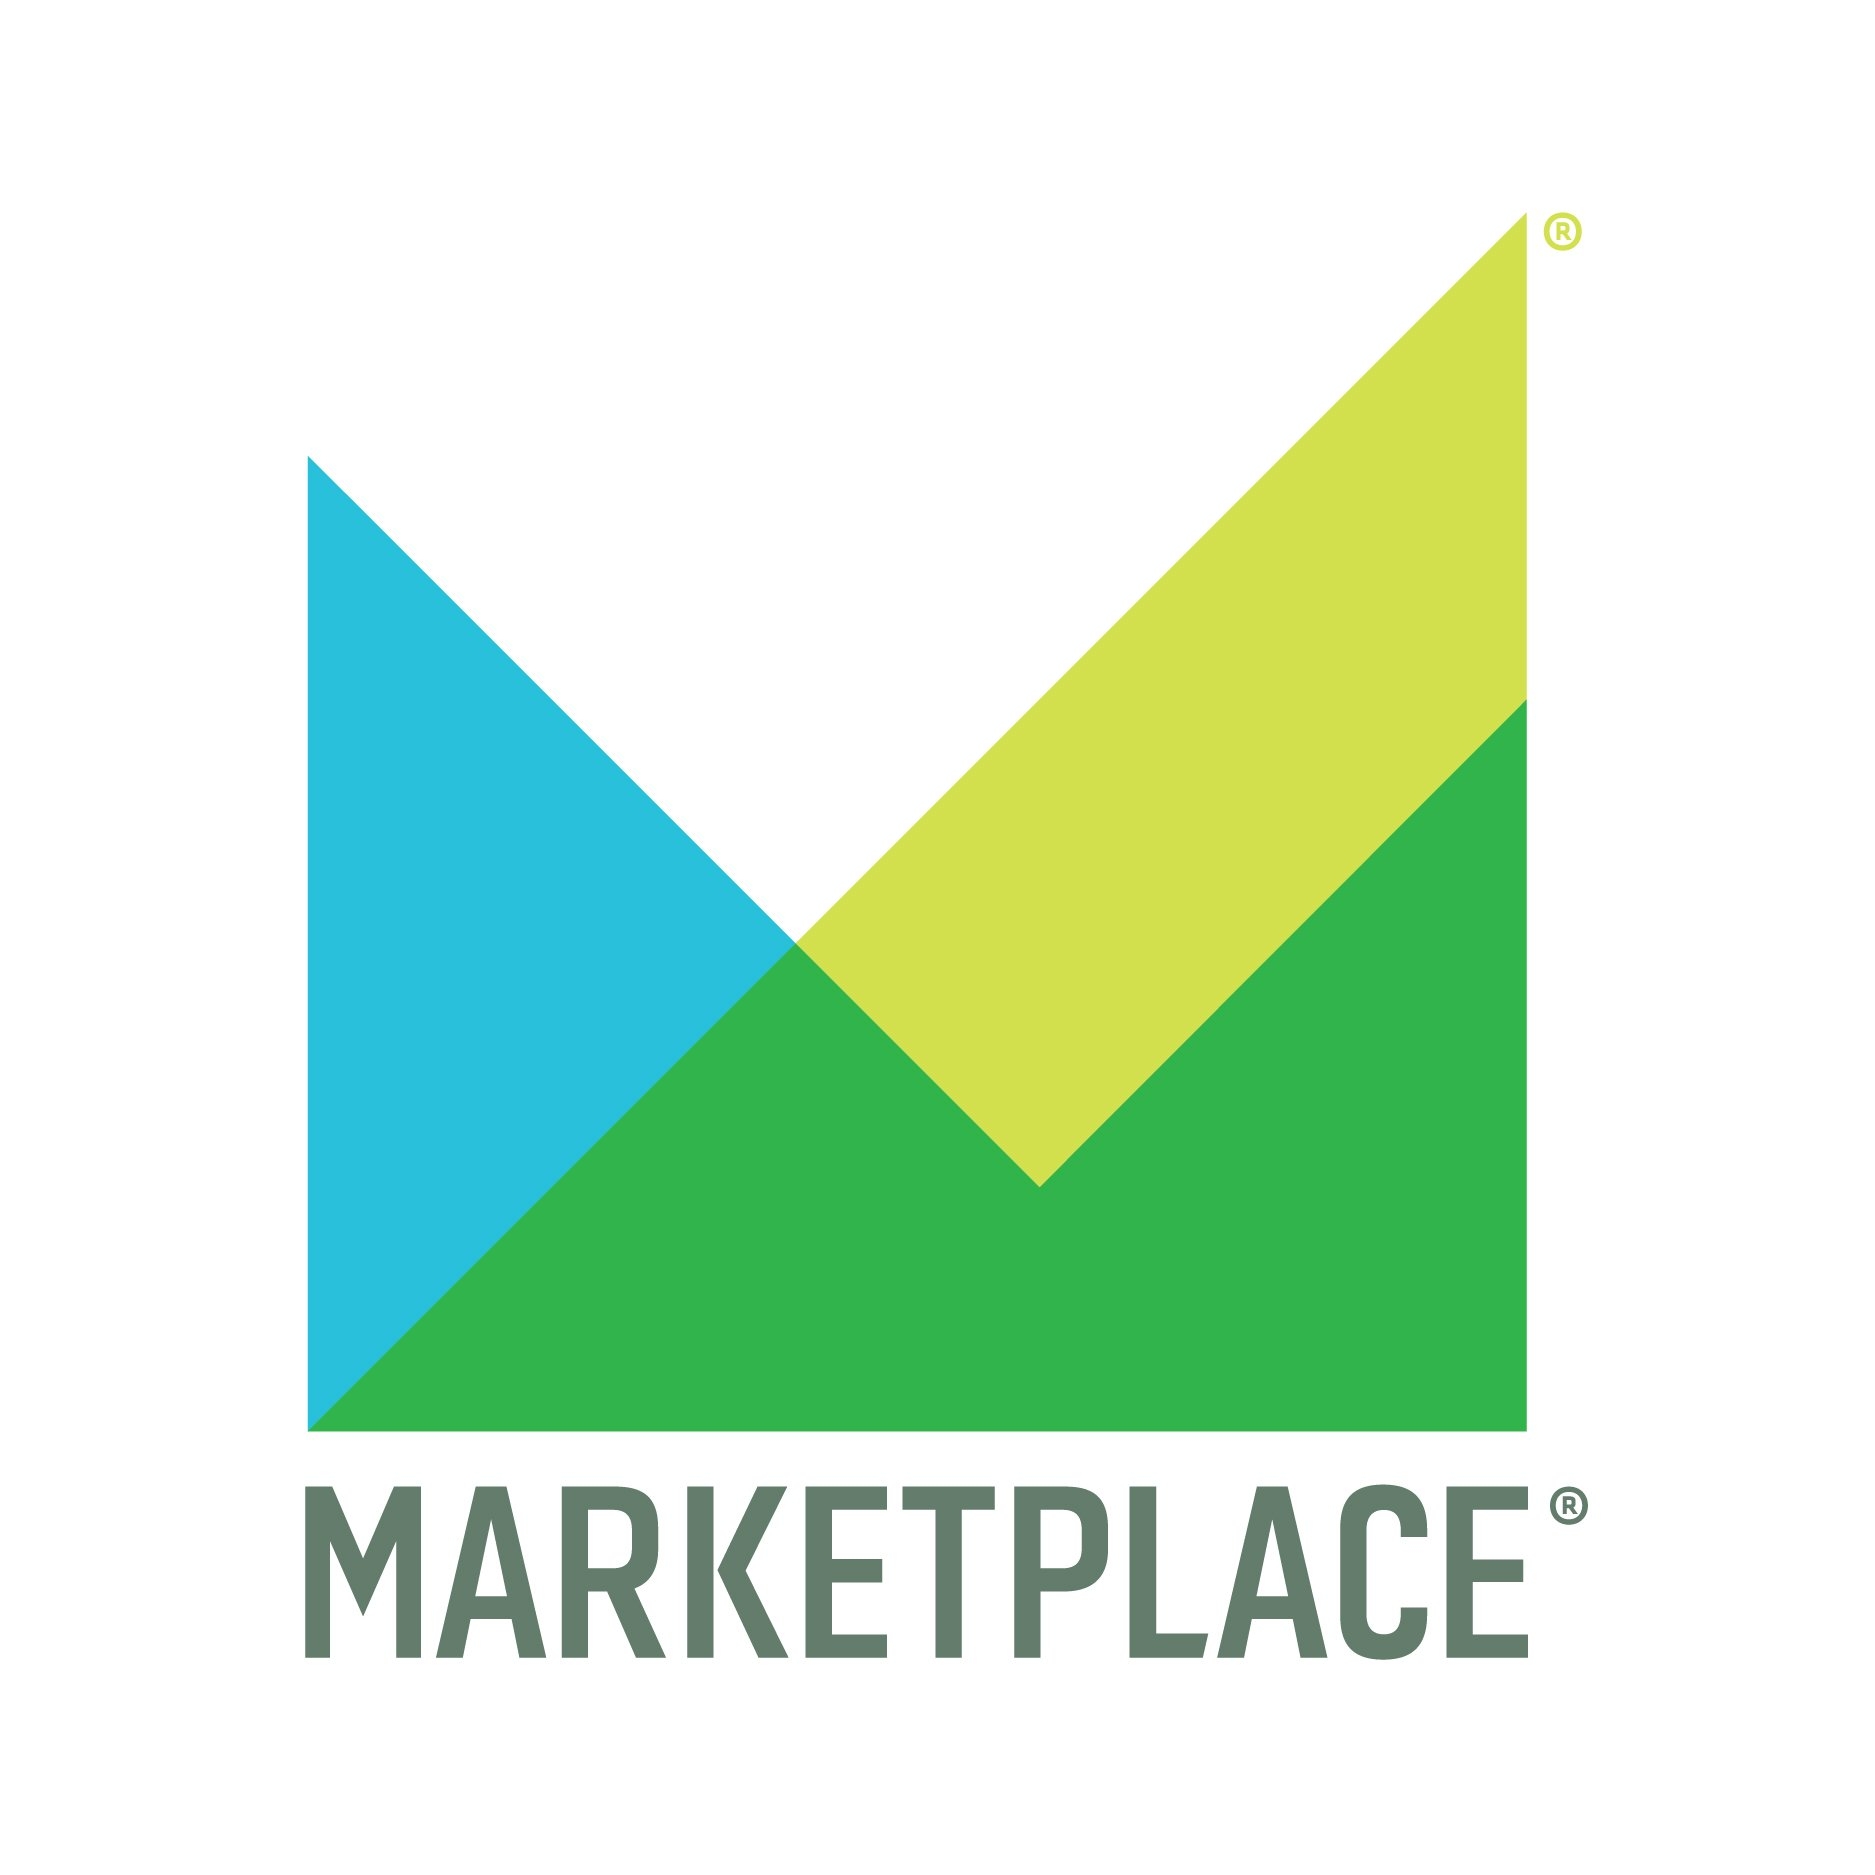 Apm Distribution On Twitter More Great News This Morning This Time From Detroit Starting Monday Wdet Will Air Marketplace With Kairyssdal At 6 P M